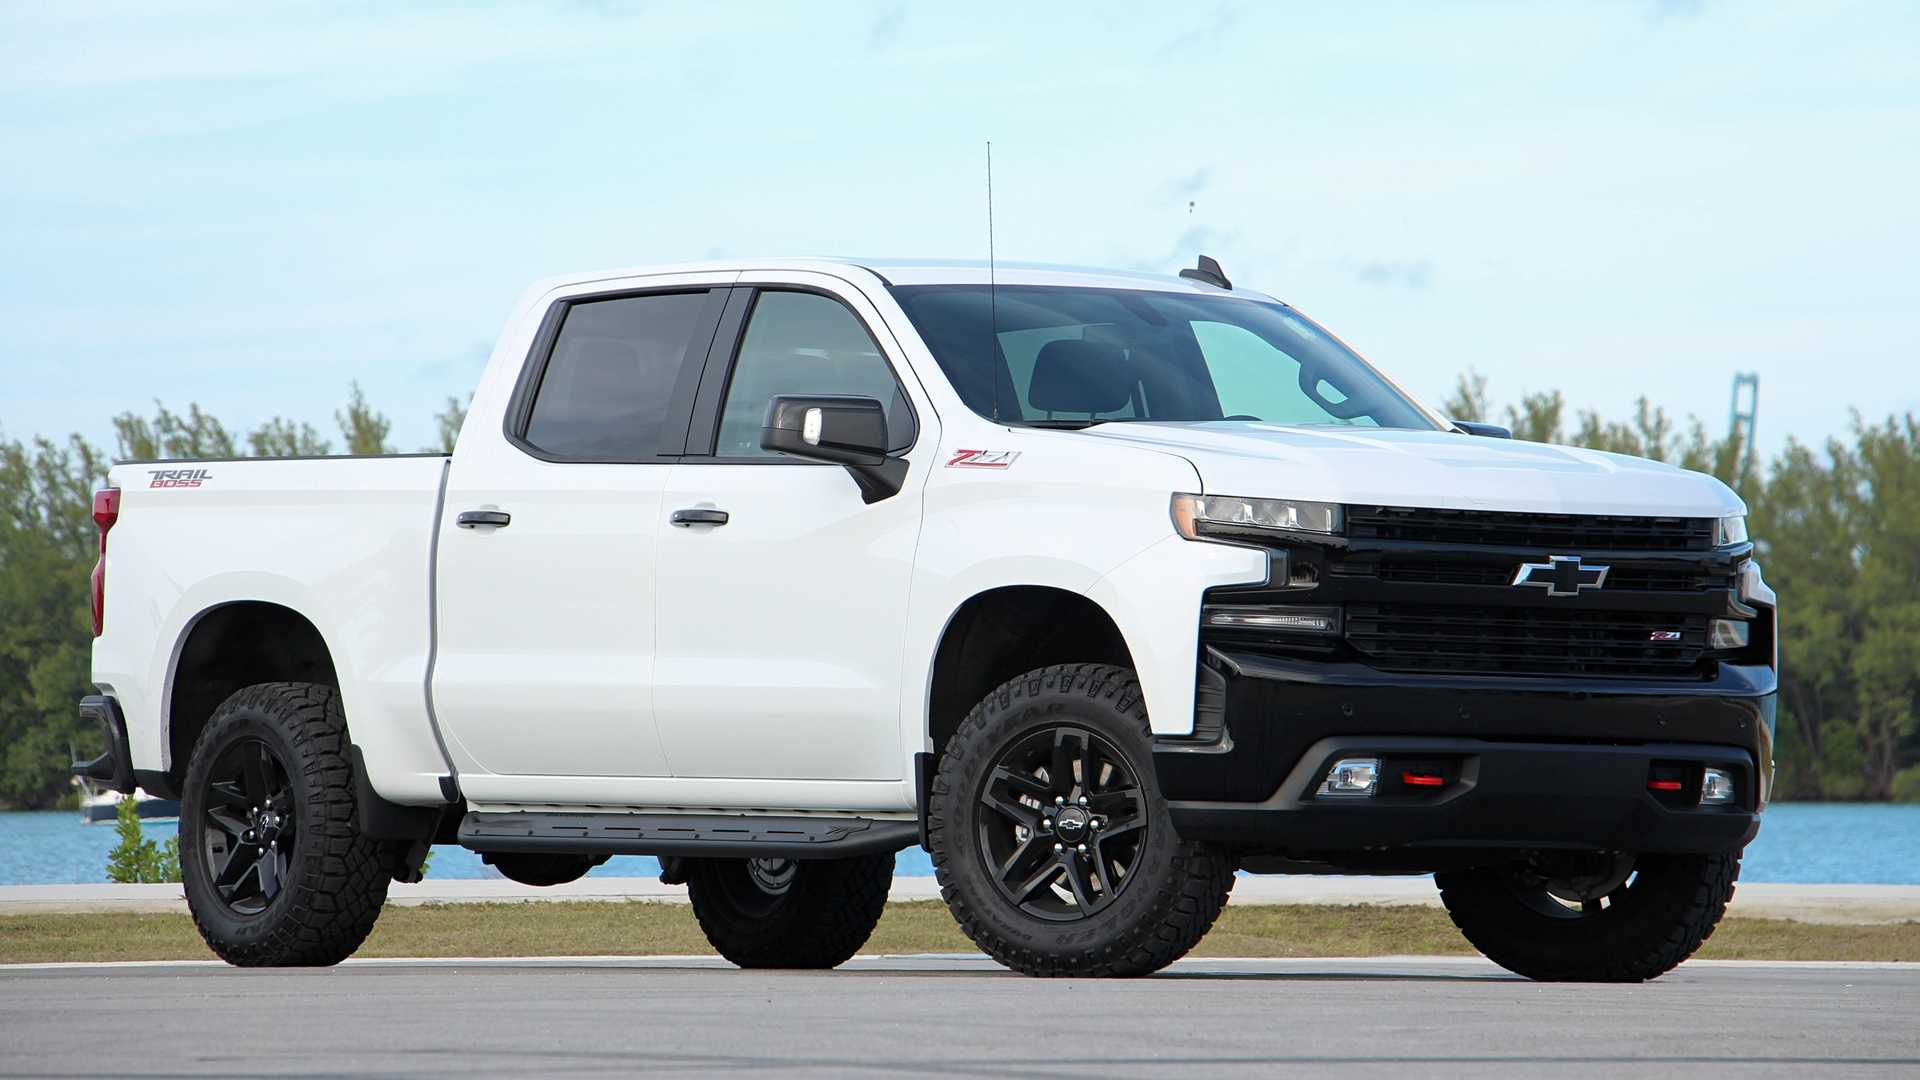 73 Gallery of New 2019 Chevrolet Hd Review And Release Date New Concept for New 2019 Chevrolet Hd Review And Release Date